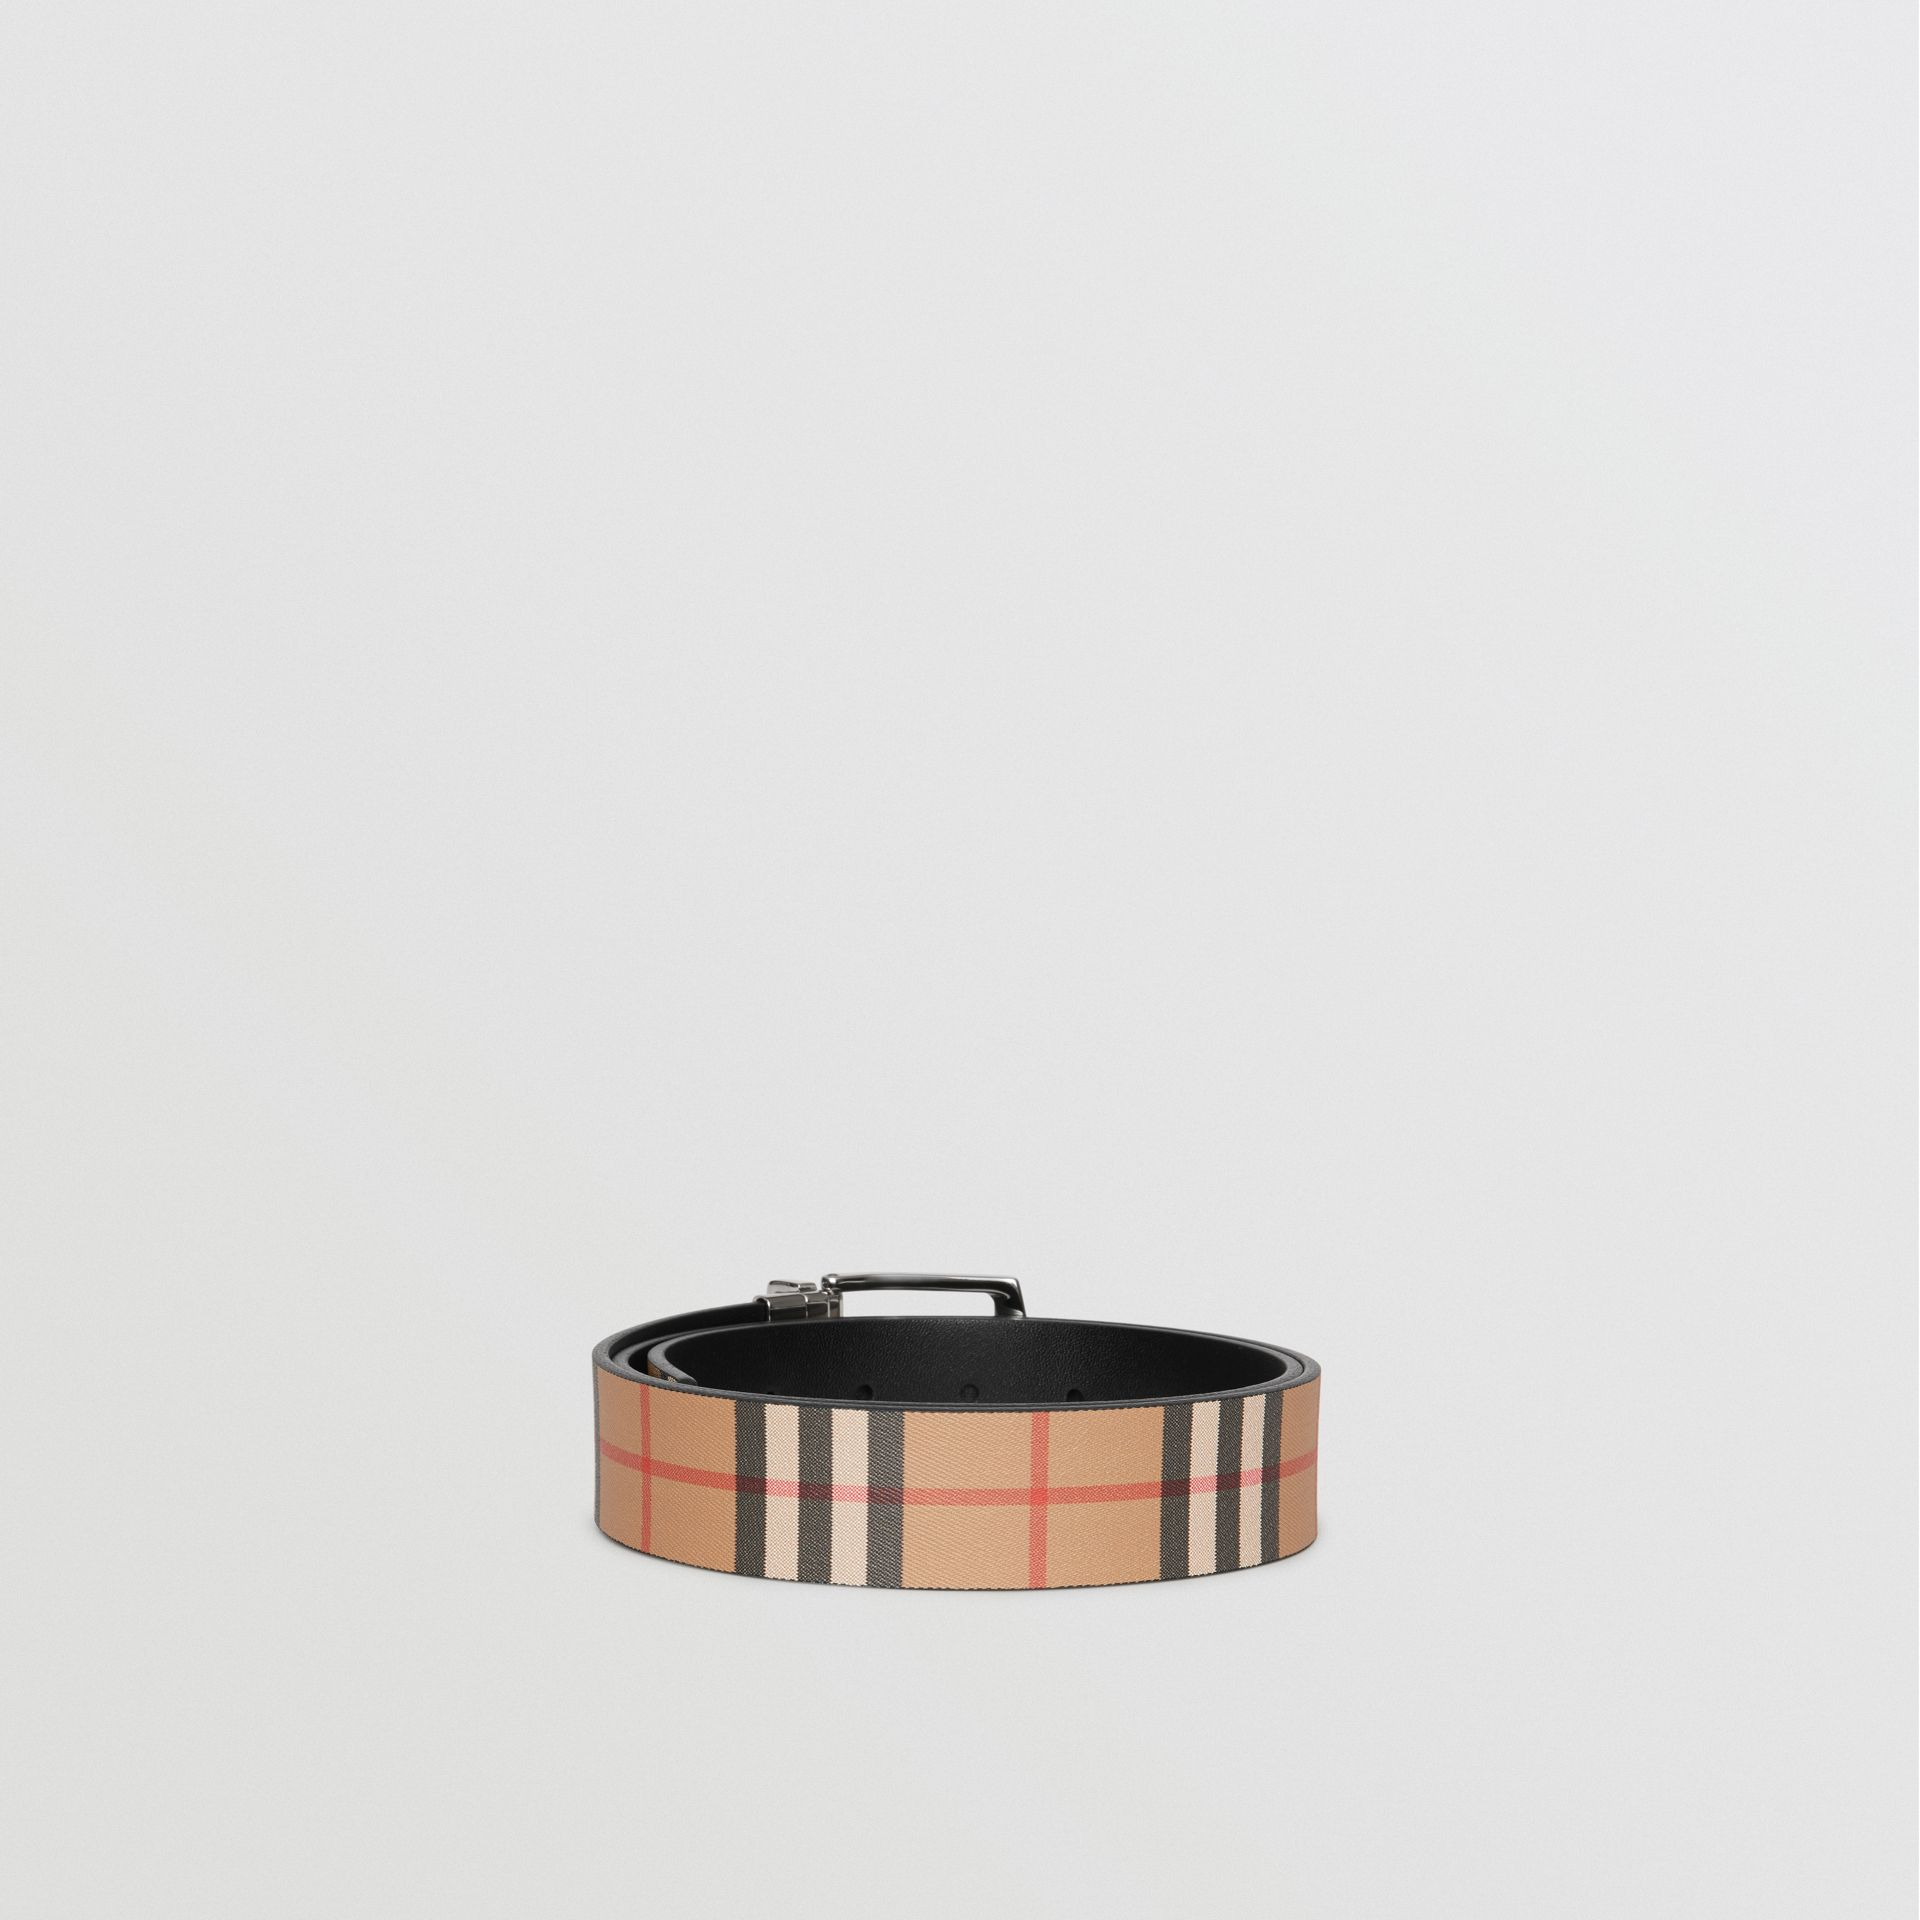 Reversible Vintage Check Leather Belt in Black - Men | Burberry Hong Kong - gallery image 5